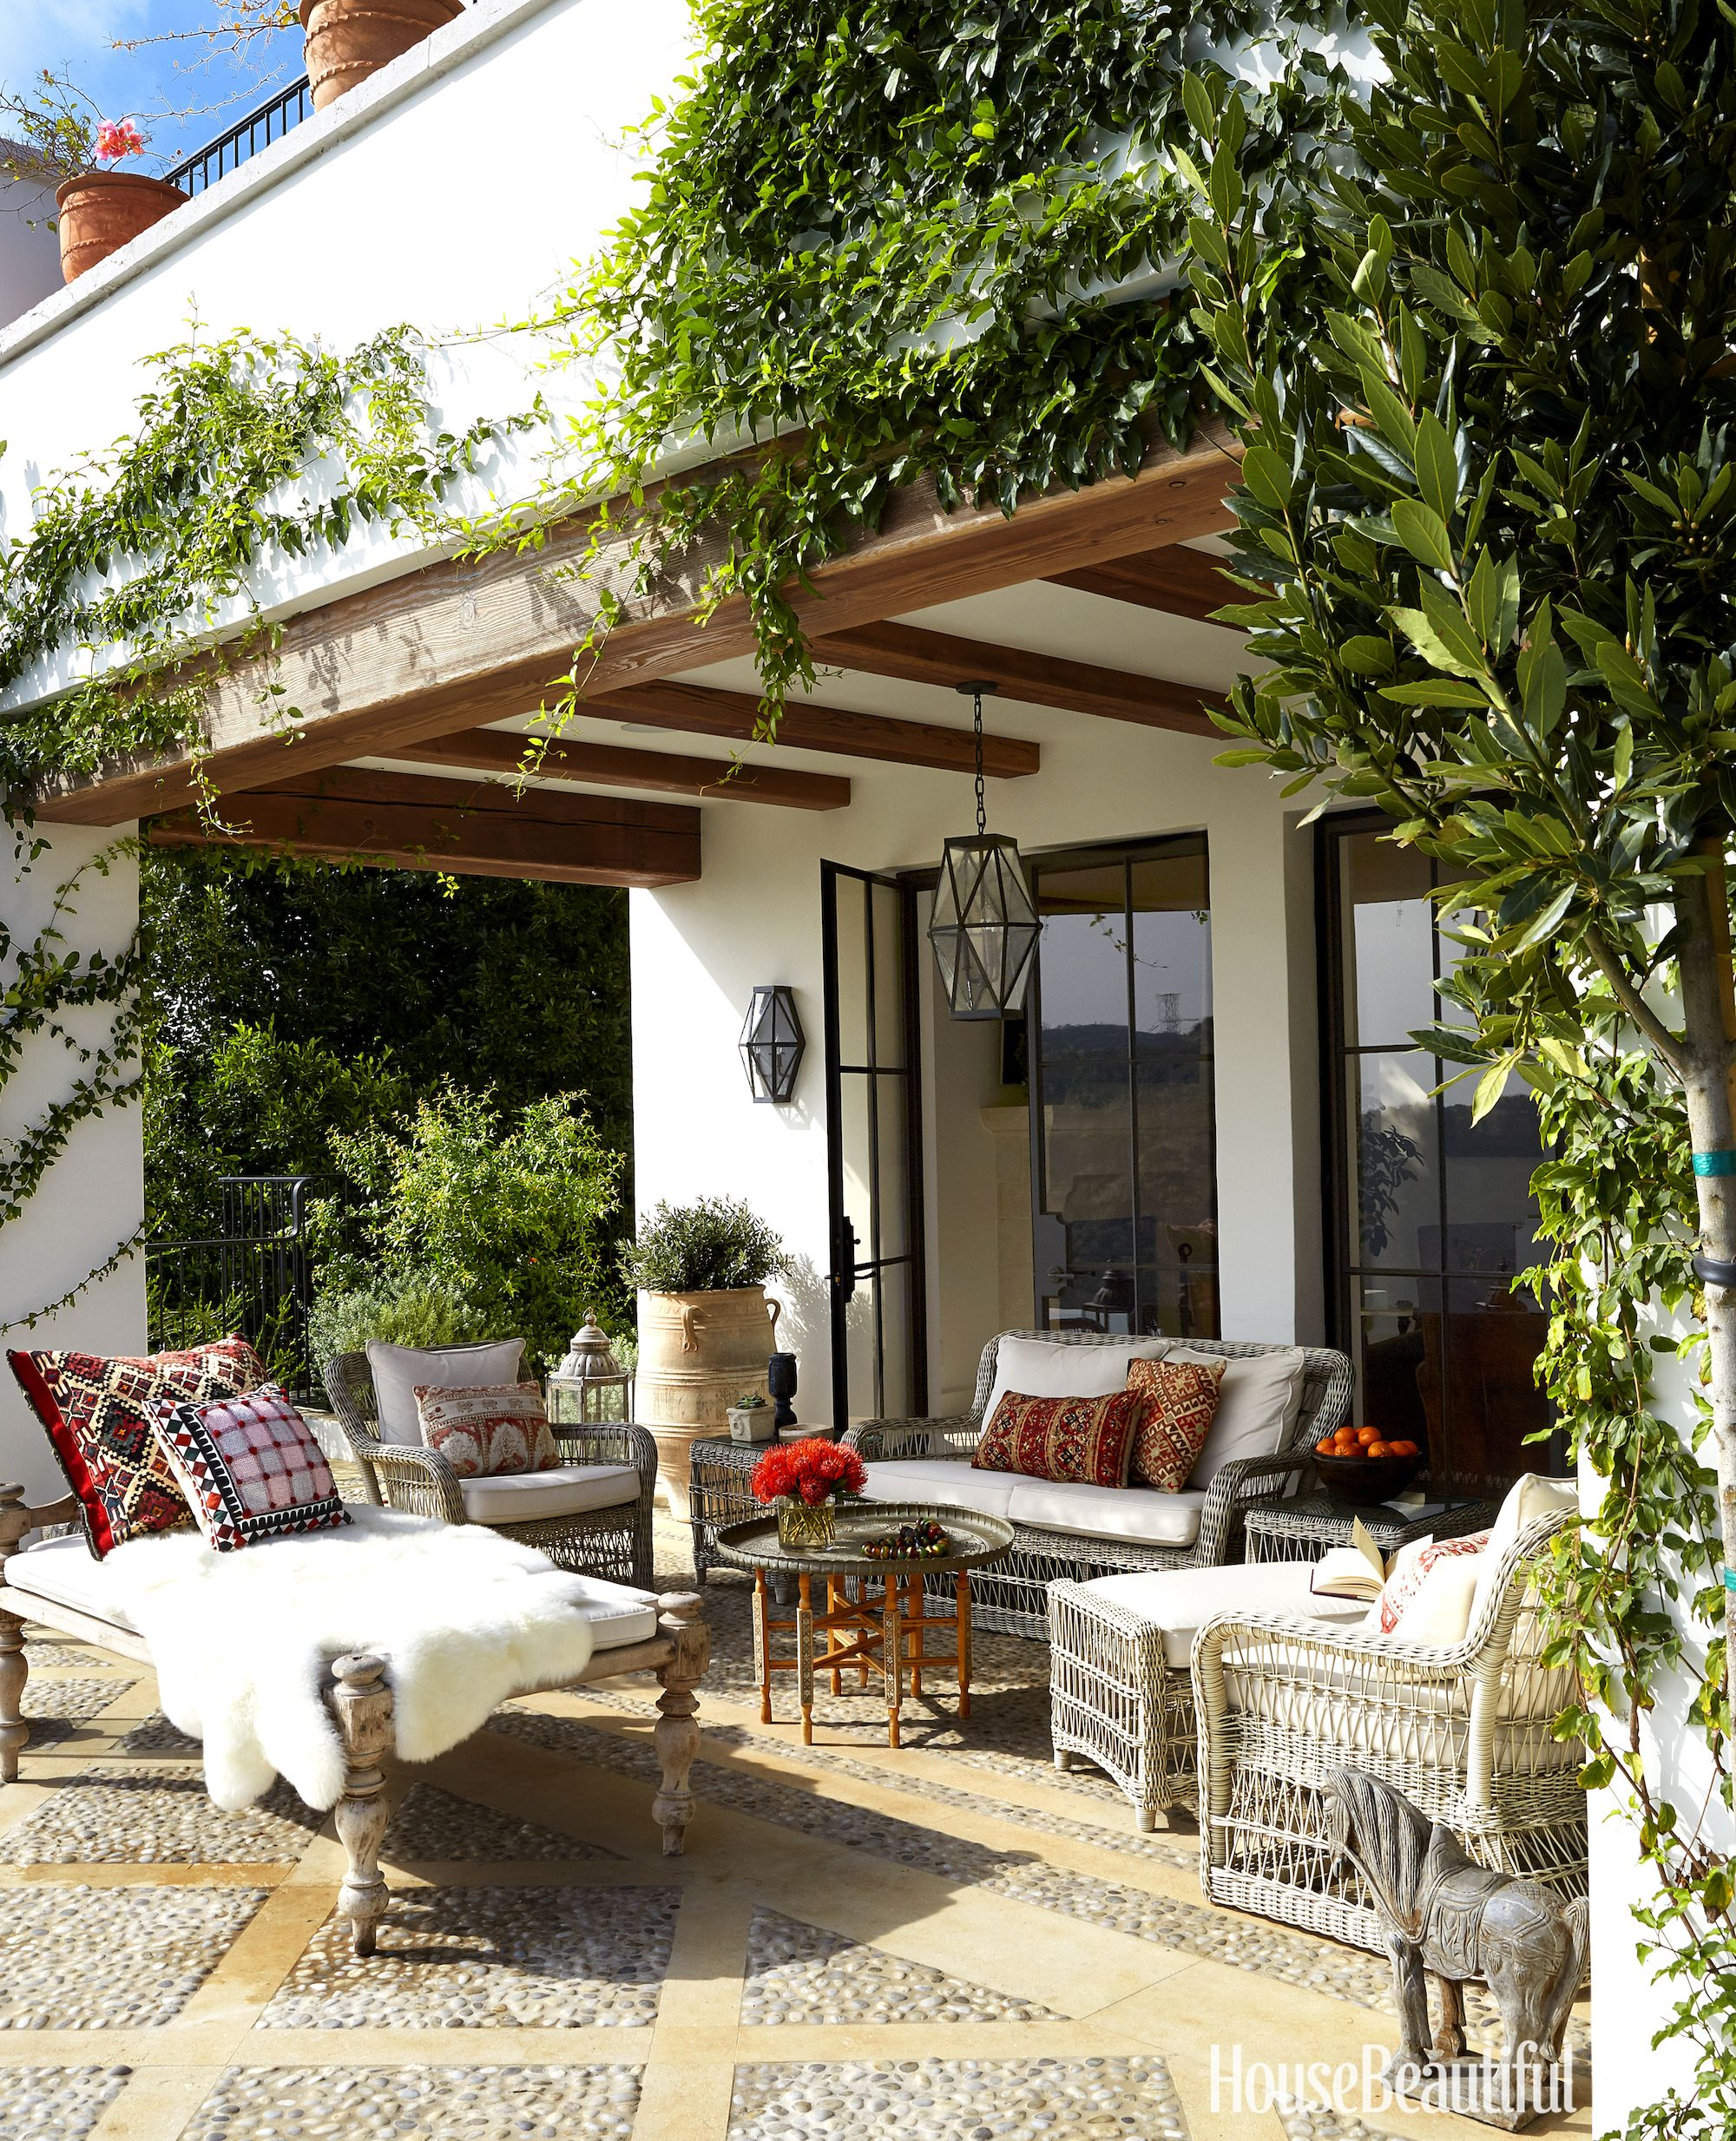 Outdoor Living Designs 85 Patio And Outdoor Room Design Ideas And Photos